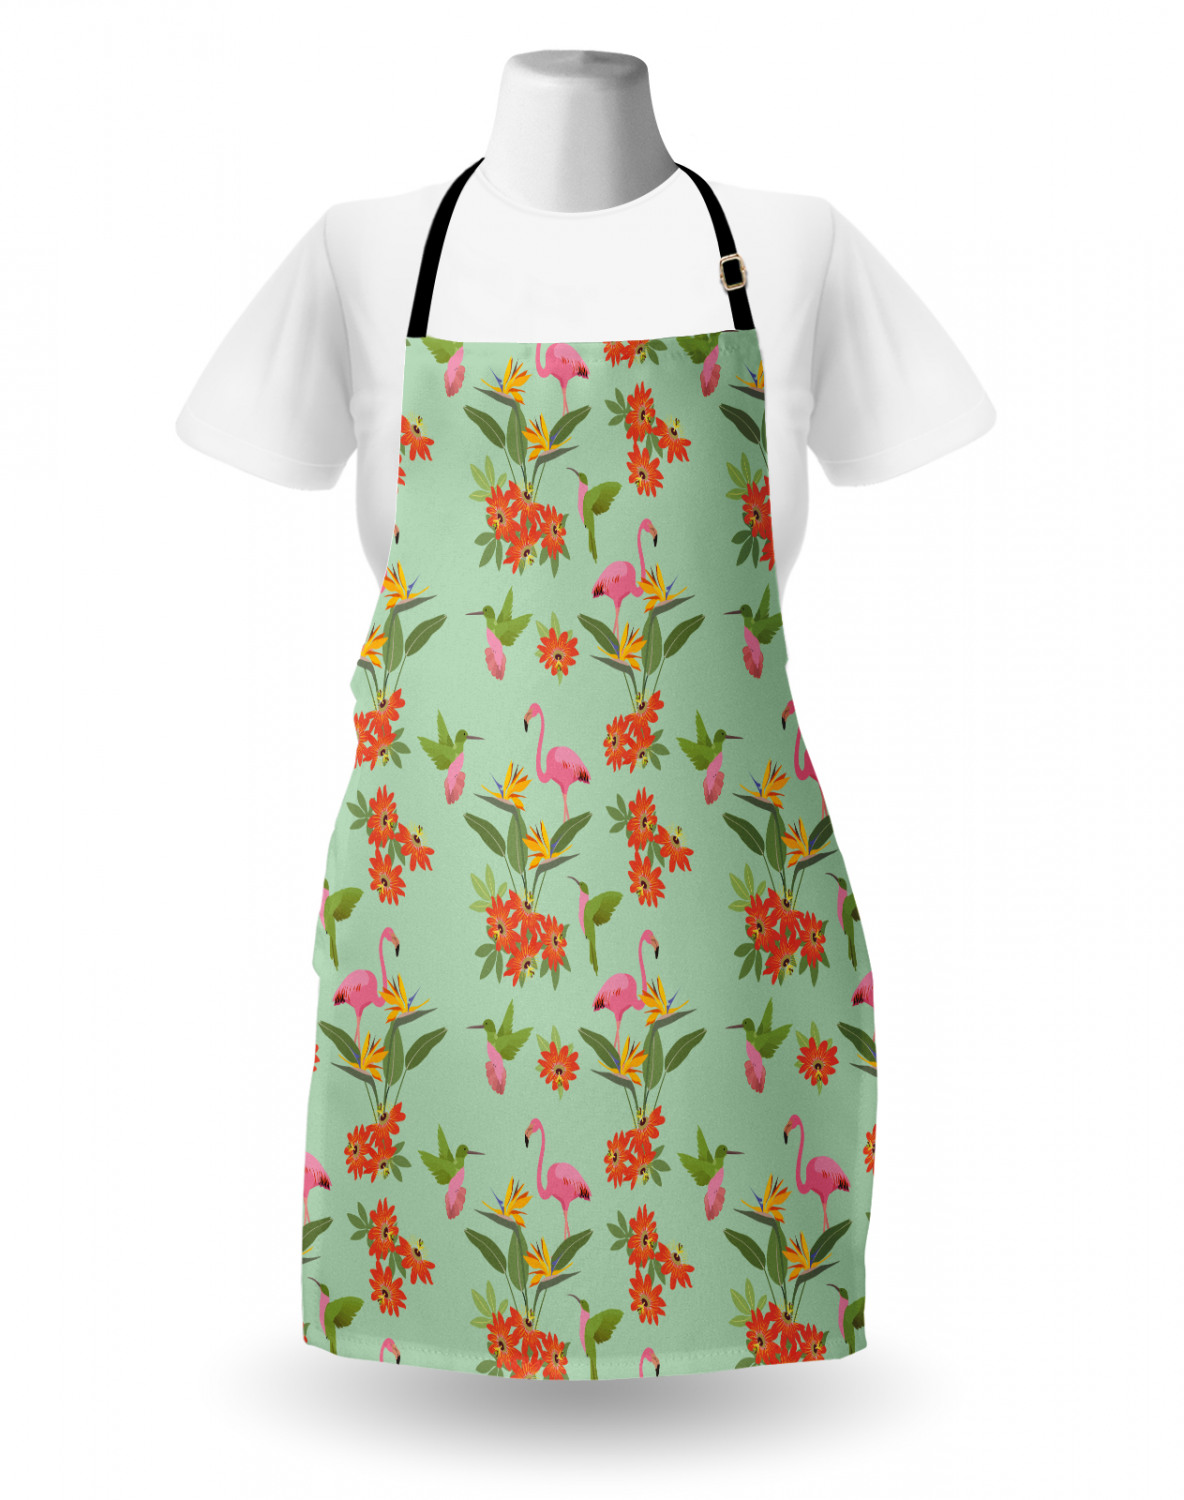 Ambesonne-Outdoor-Use-Apron-with-Adjustable-Neck-Strap-for-Gardening-and-Cooking miniatura 170